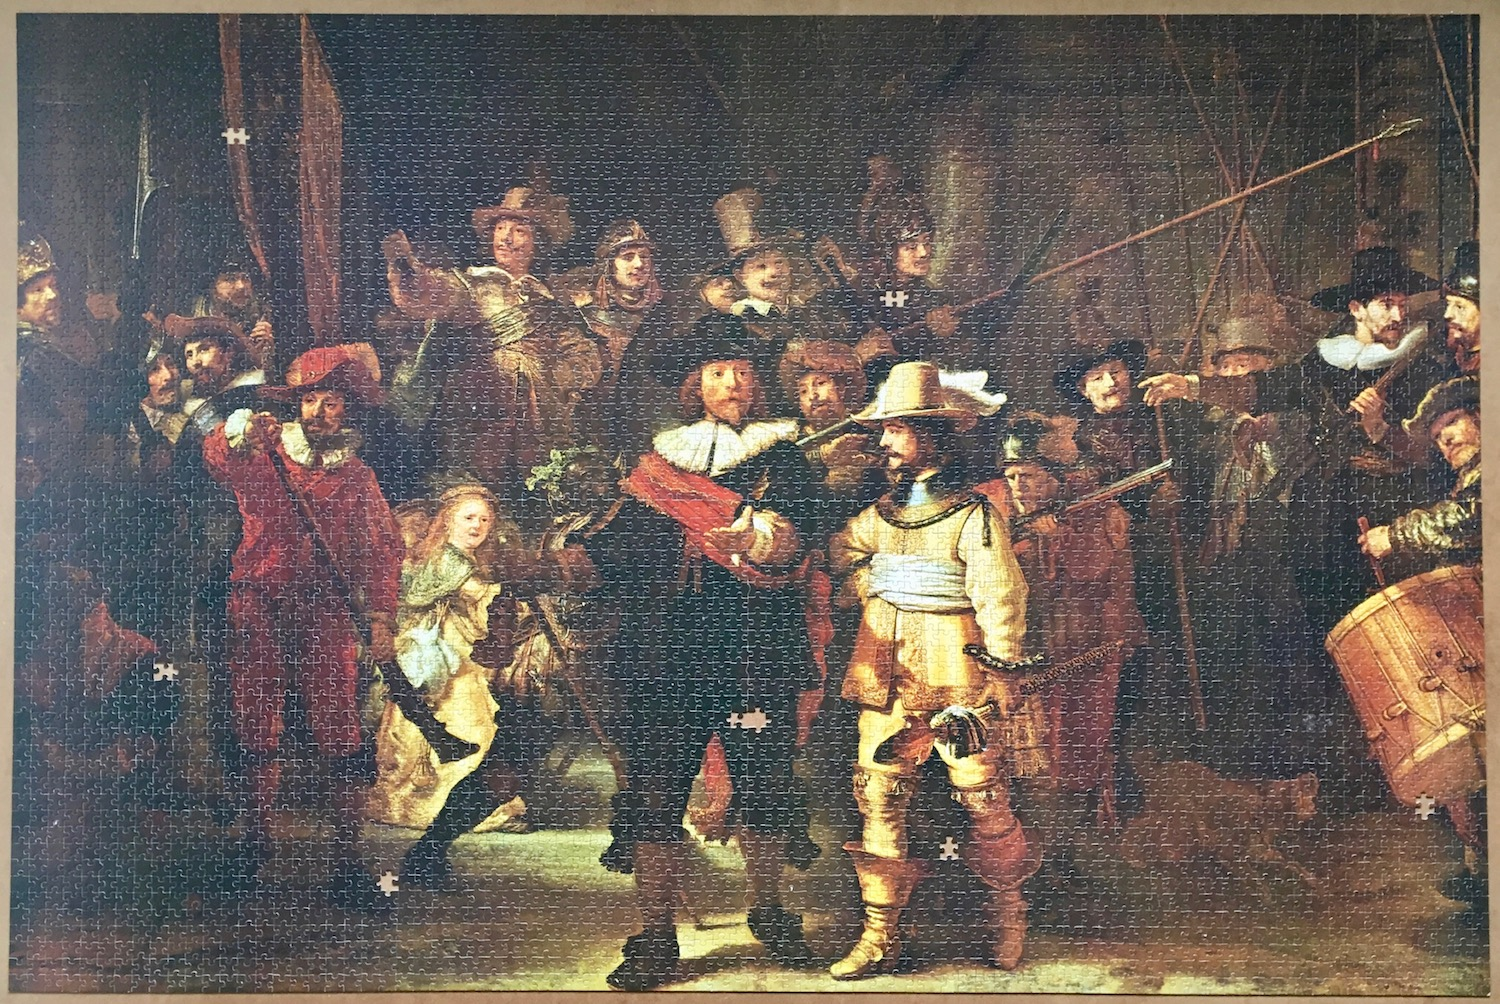 Image of the puzze 5000, Ravensburger, The Night Watch, by Rembrandt, Puzzle Assembled